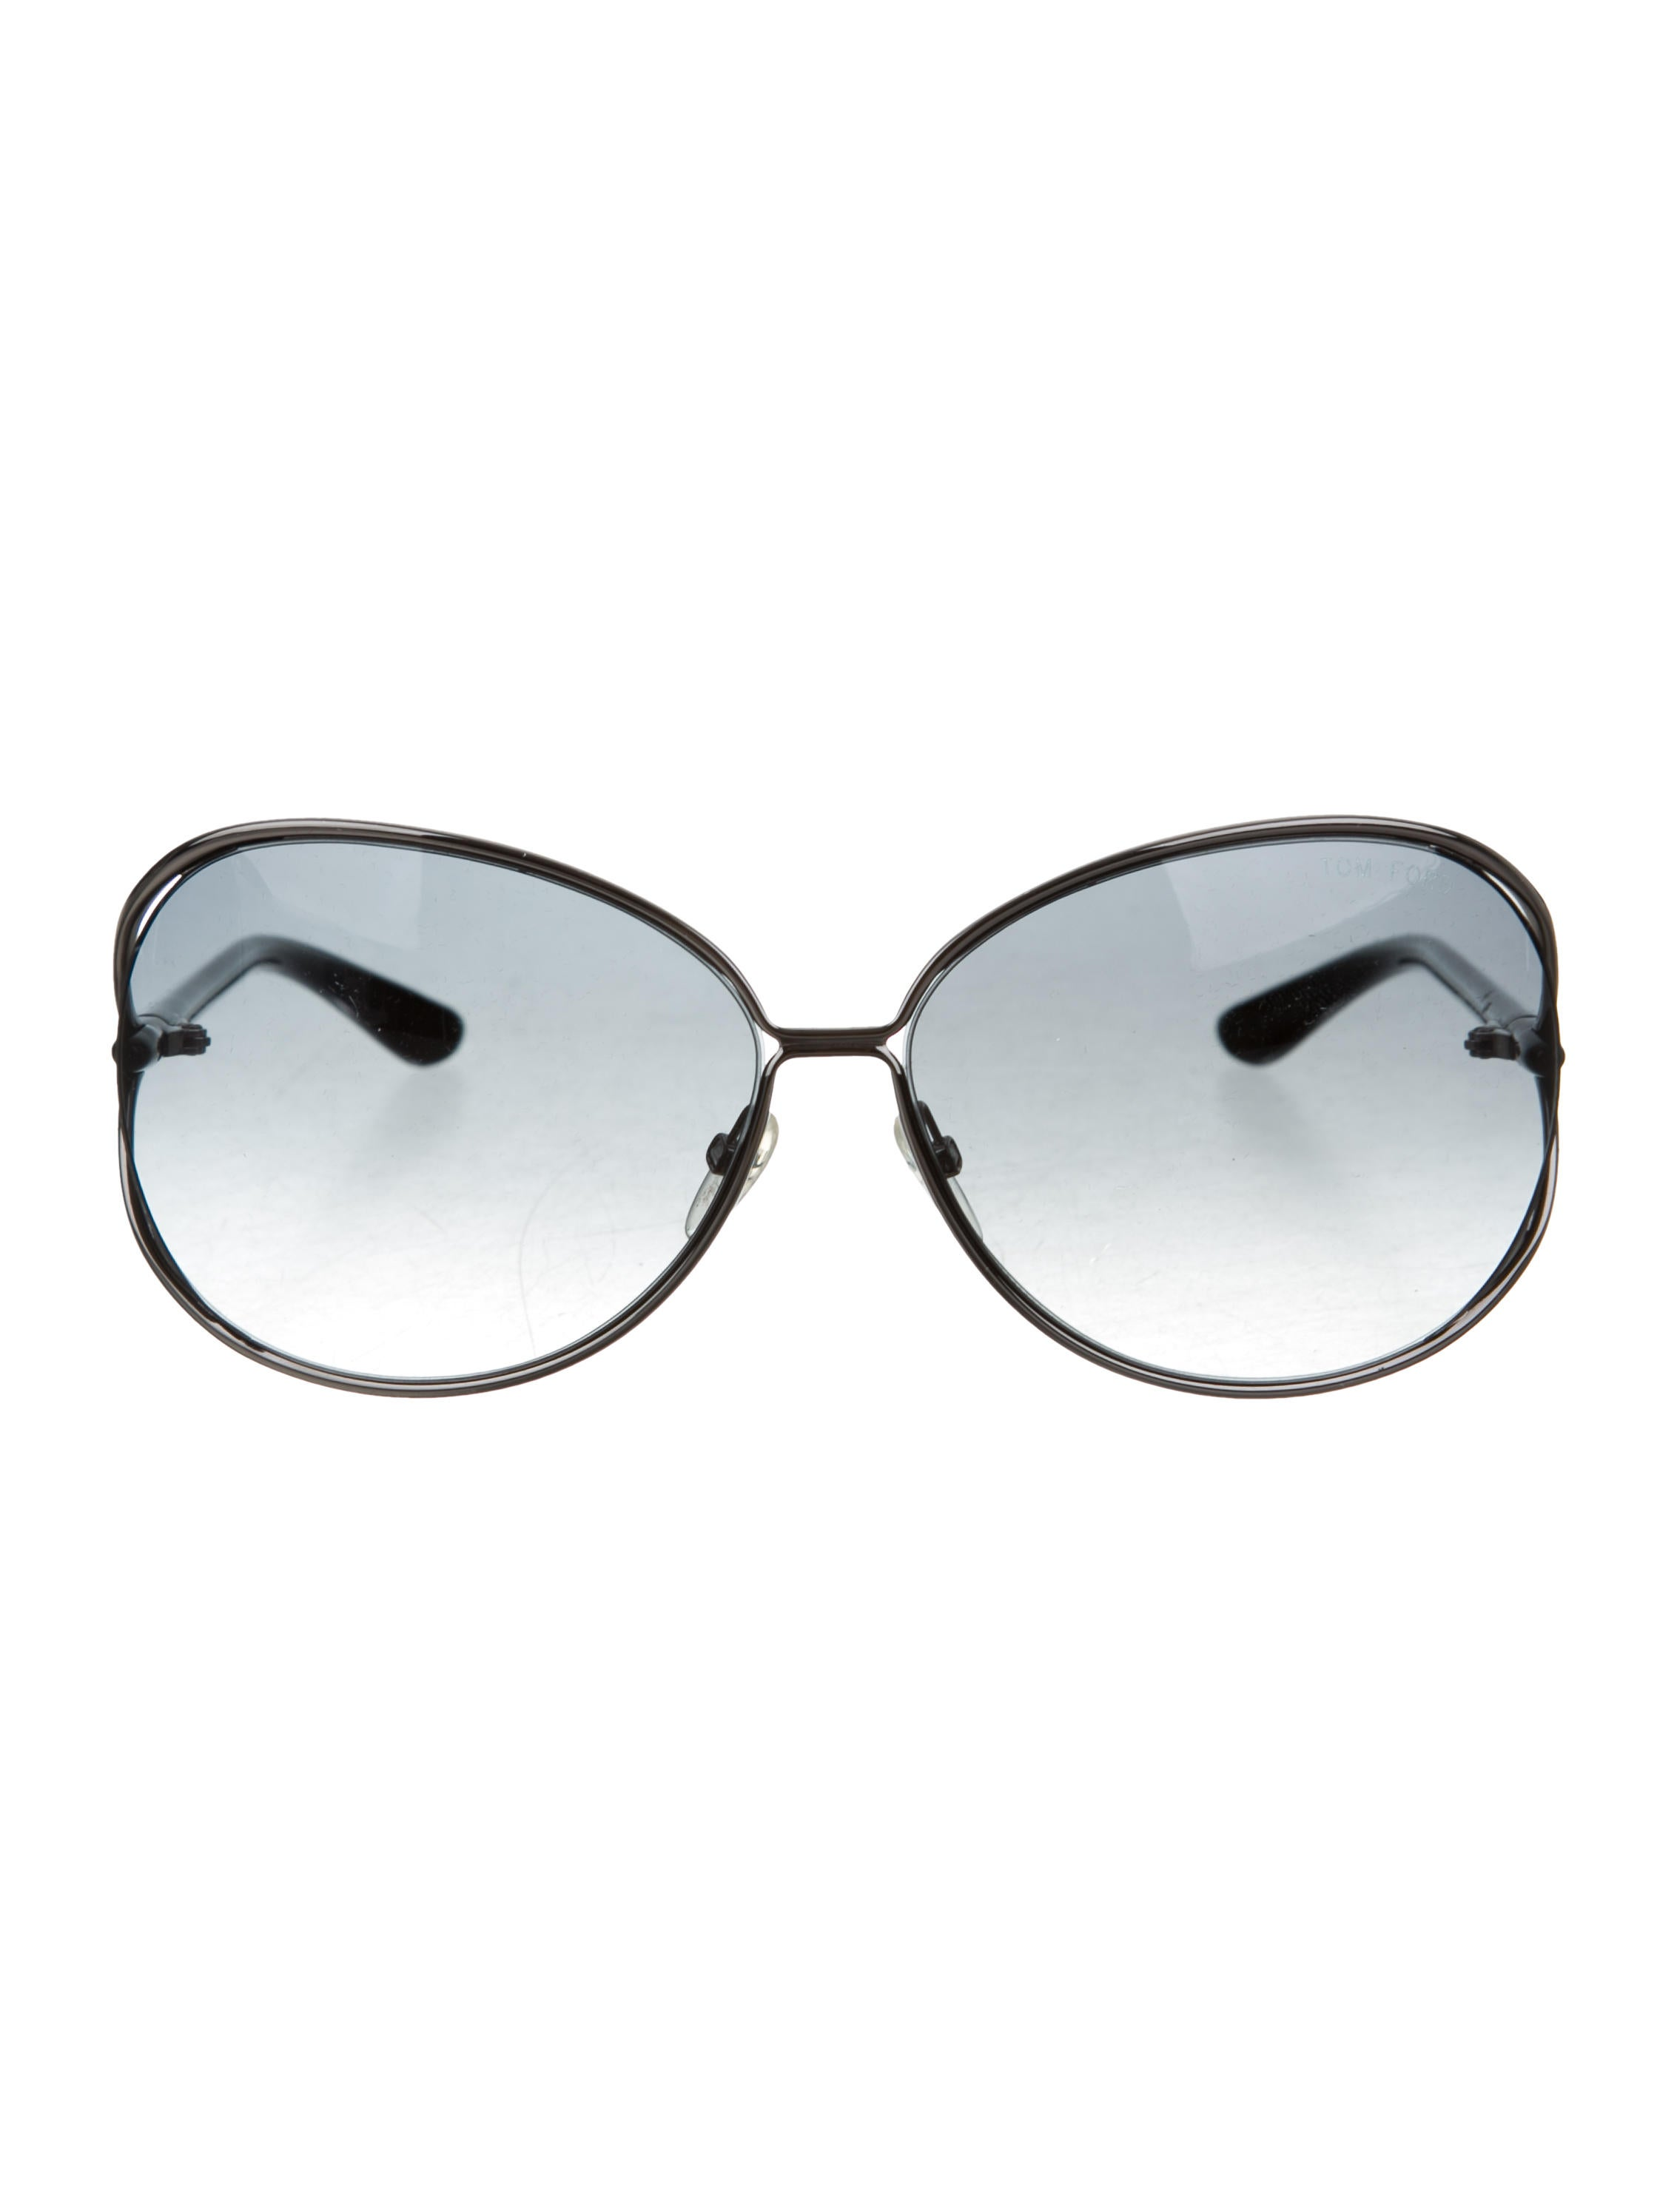 ba98f2ba182ac Tom Ford Clemence Gradient Sunglasses - Accessories - TOM36220